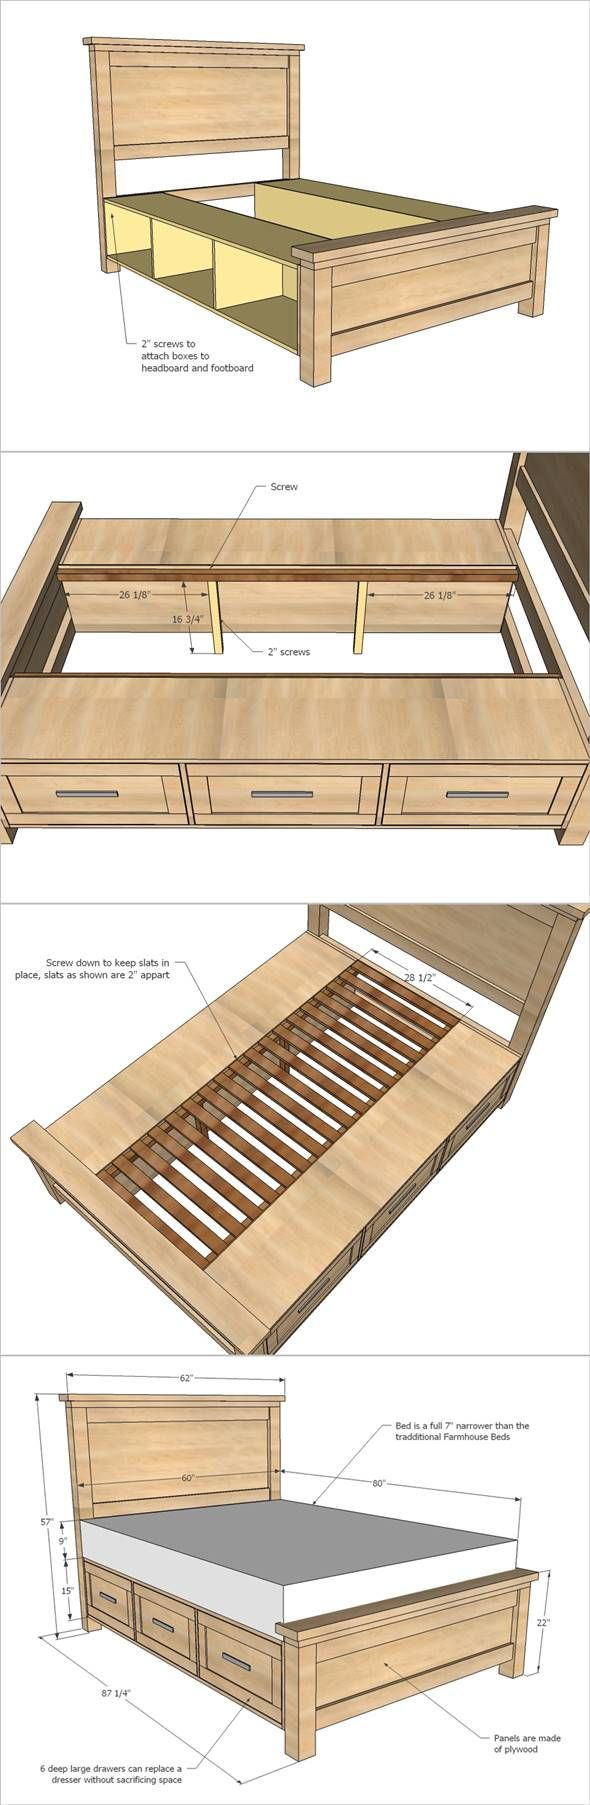 How To Build A Farmhouse Storage Bed with Drawers #furniture #bed #space-saving…